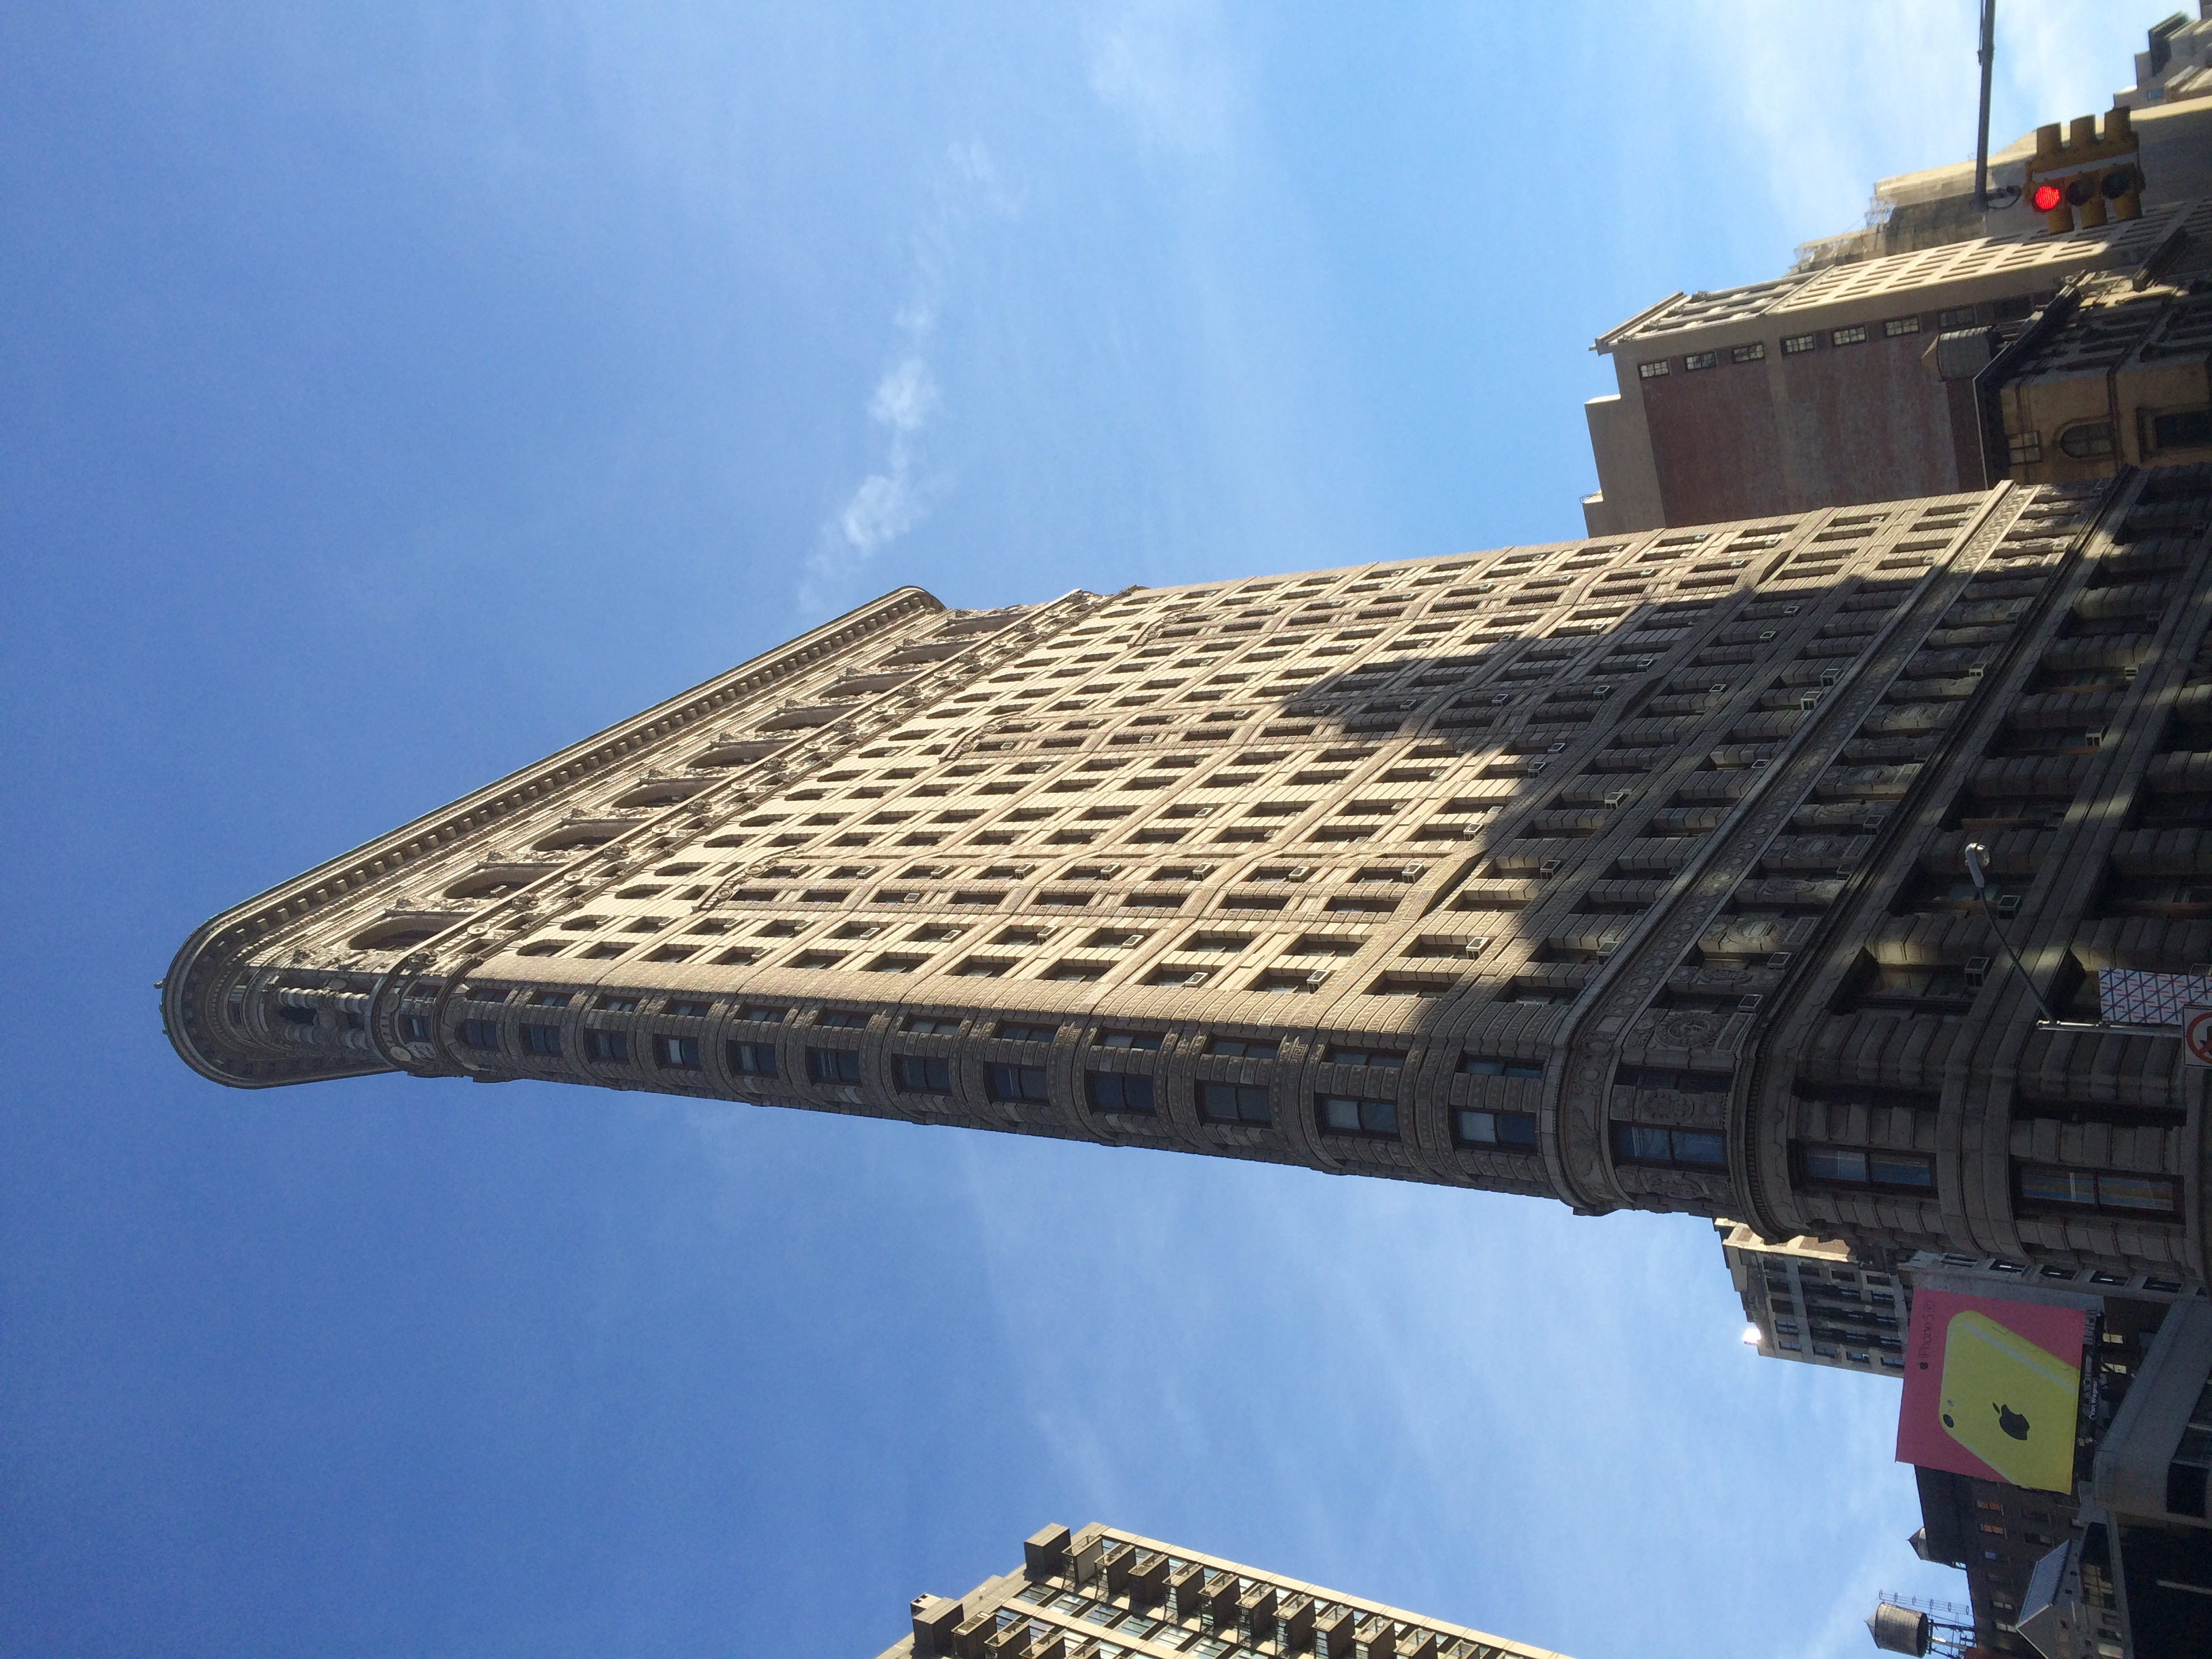 Behold the Flatiron Building in all its glory.